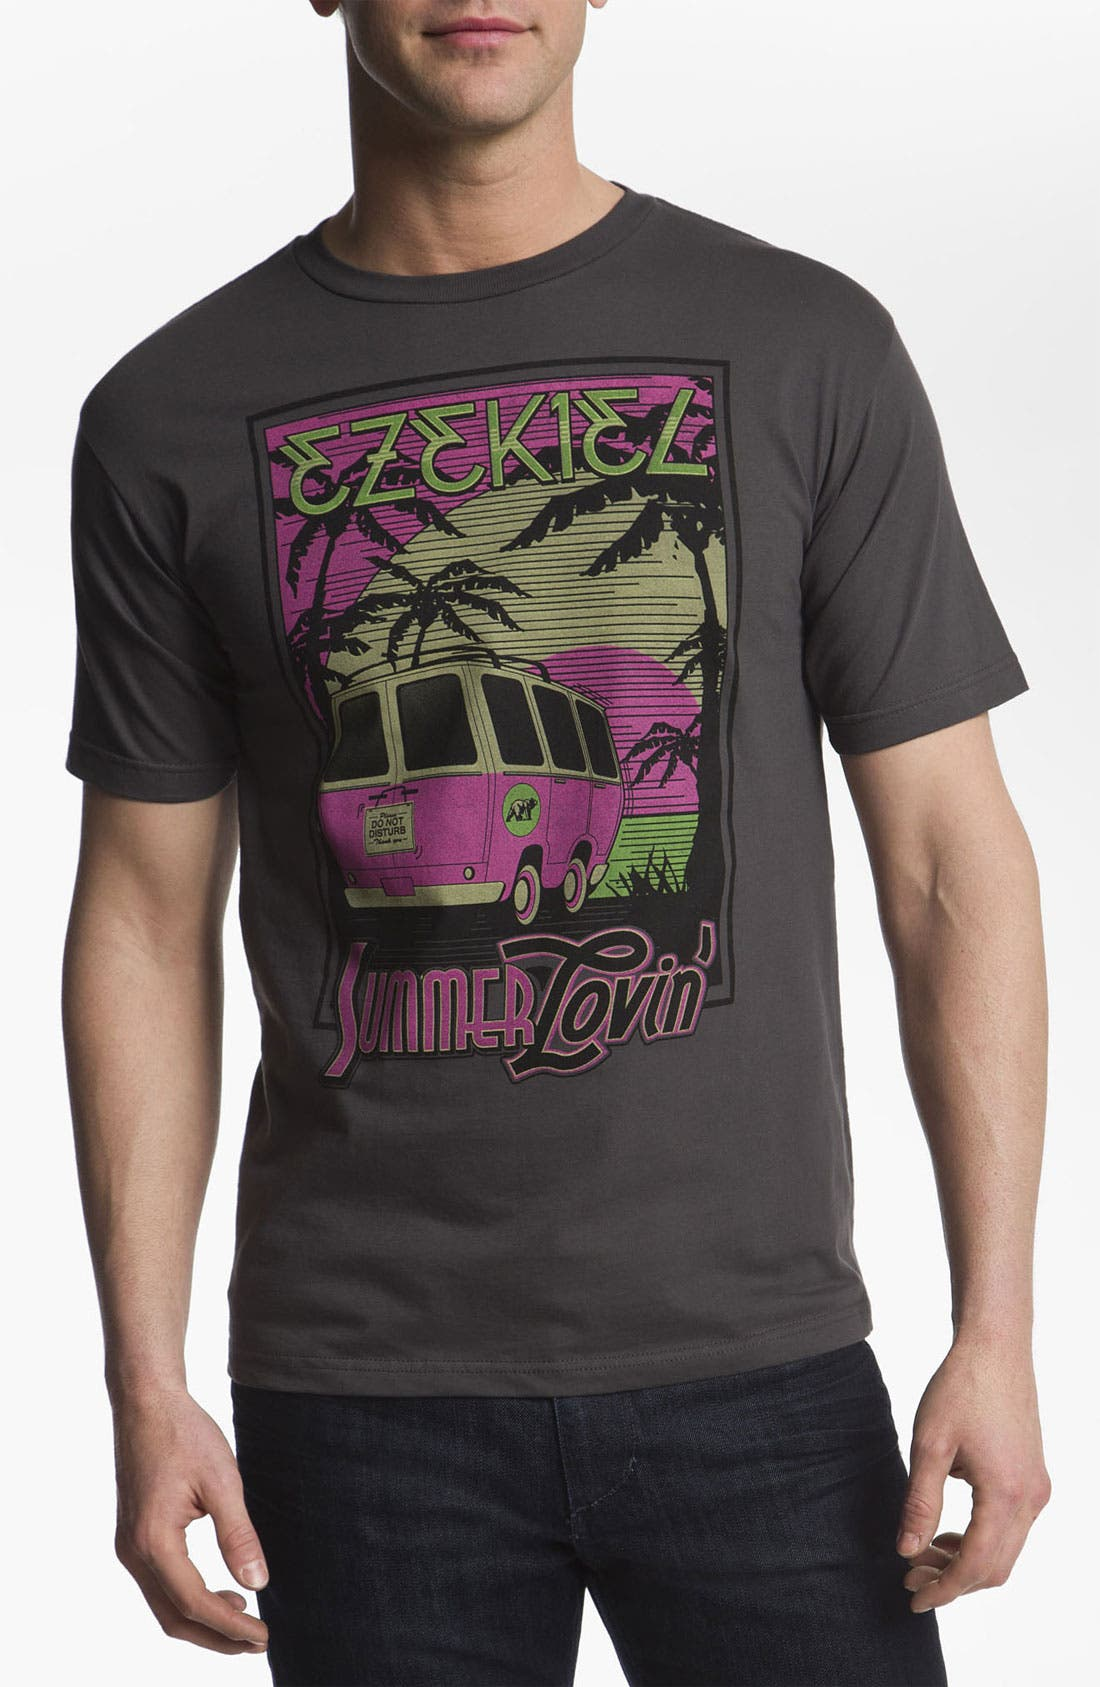 Alternate Image 1 Selected - Ezekiel 'Getaway' T-Shirt